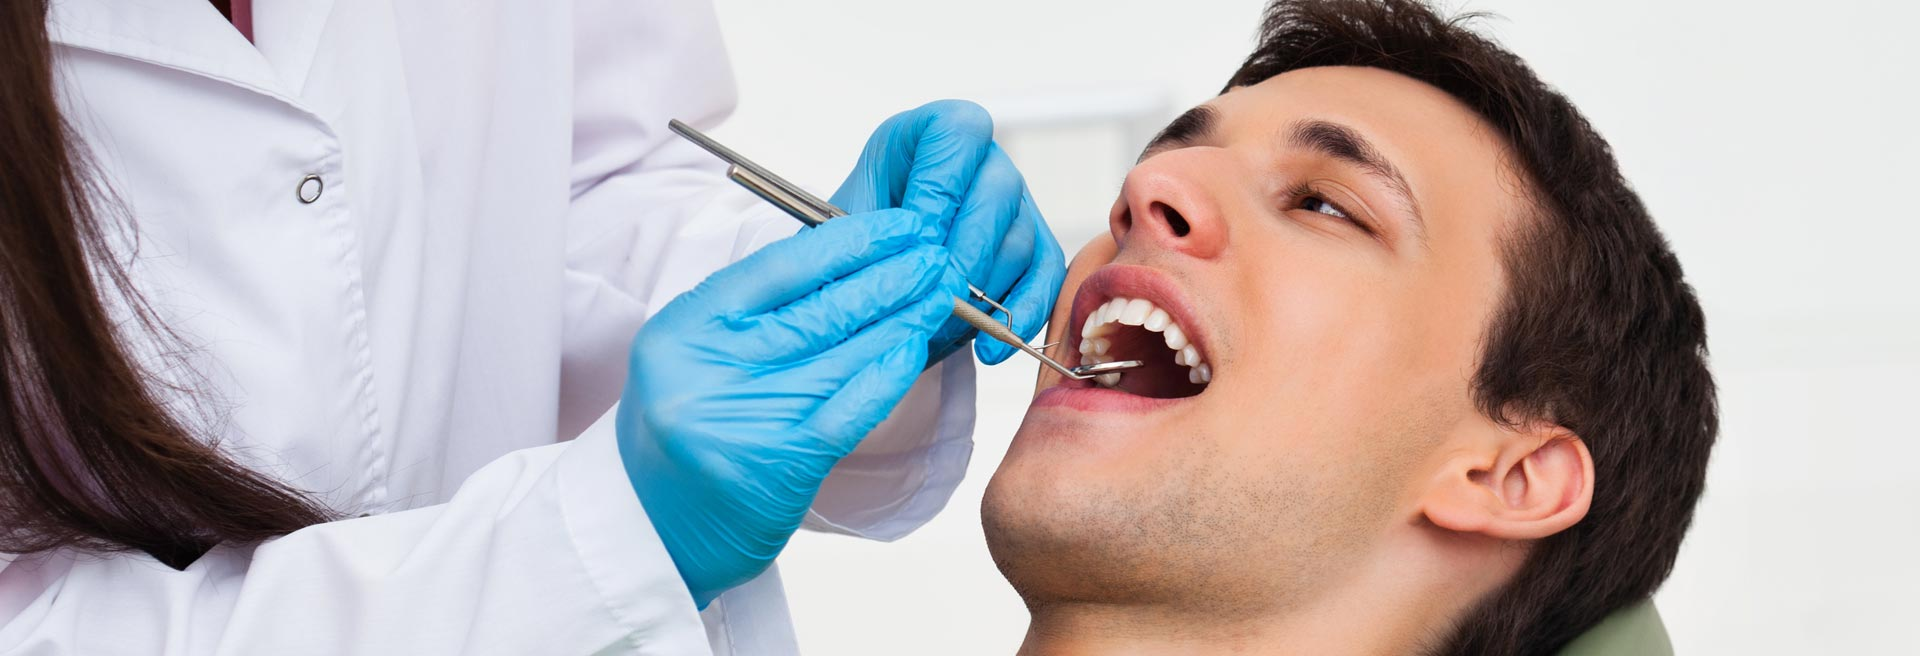 The Root Canal Cost Without Insurance